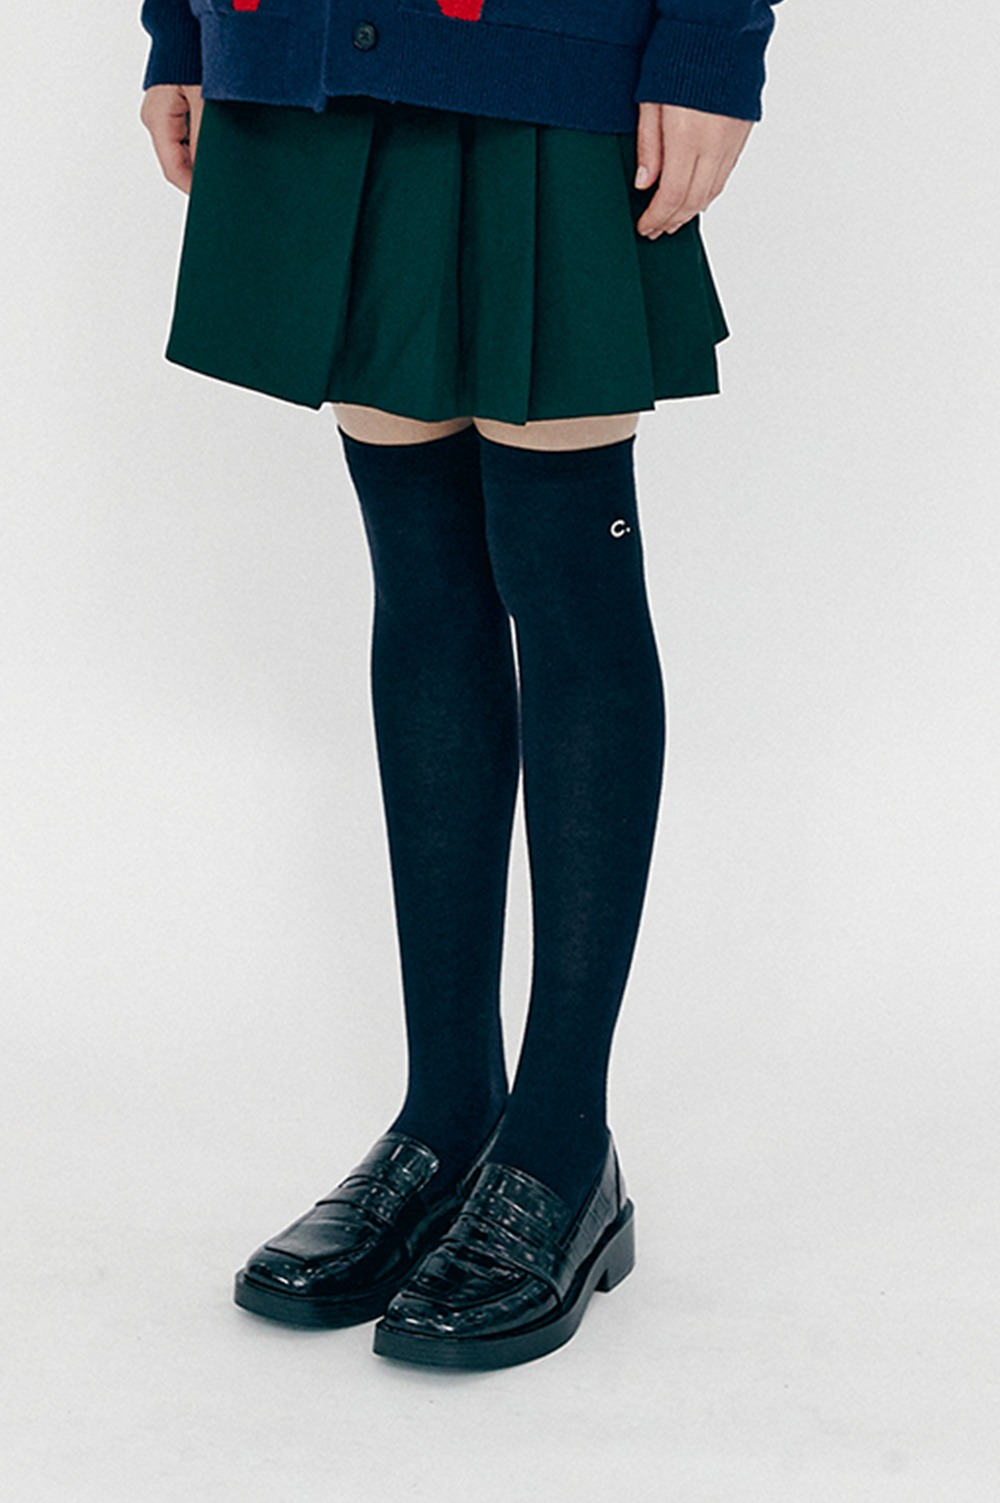 clove - High Knee Socks (Dark navy)